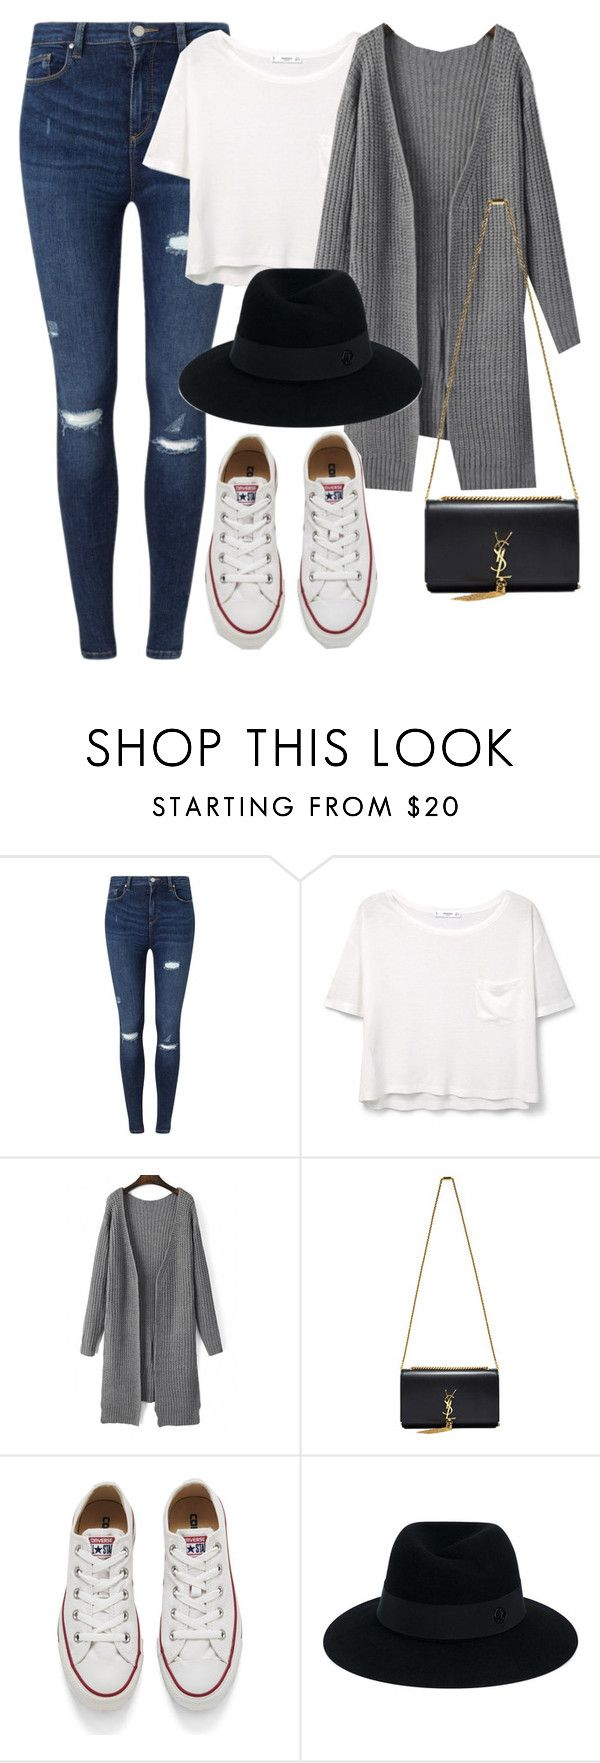 """Untitled #776"" by rguelsah ❤ liked on Polyvore featuring Miss Selfridge, MANGO, Yves Saint Laurent, Converse and Maison Michel"